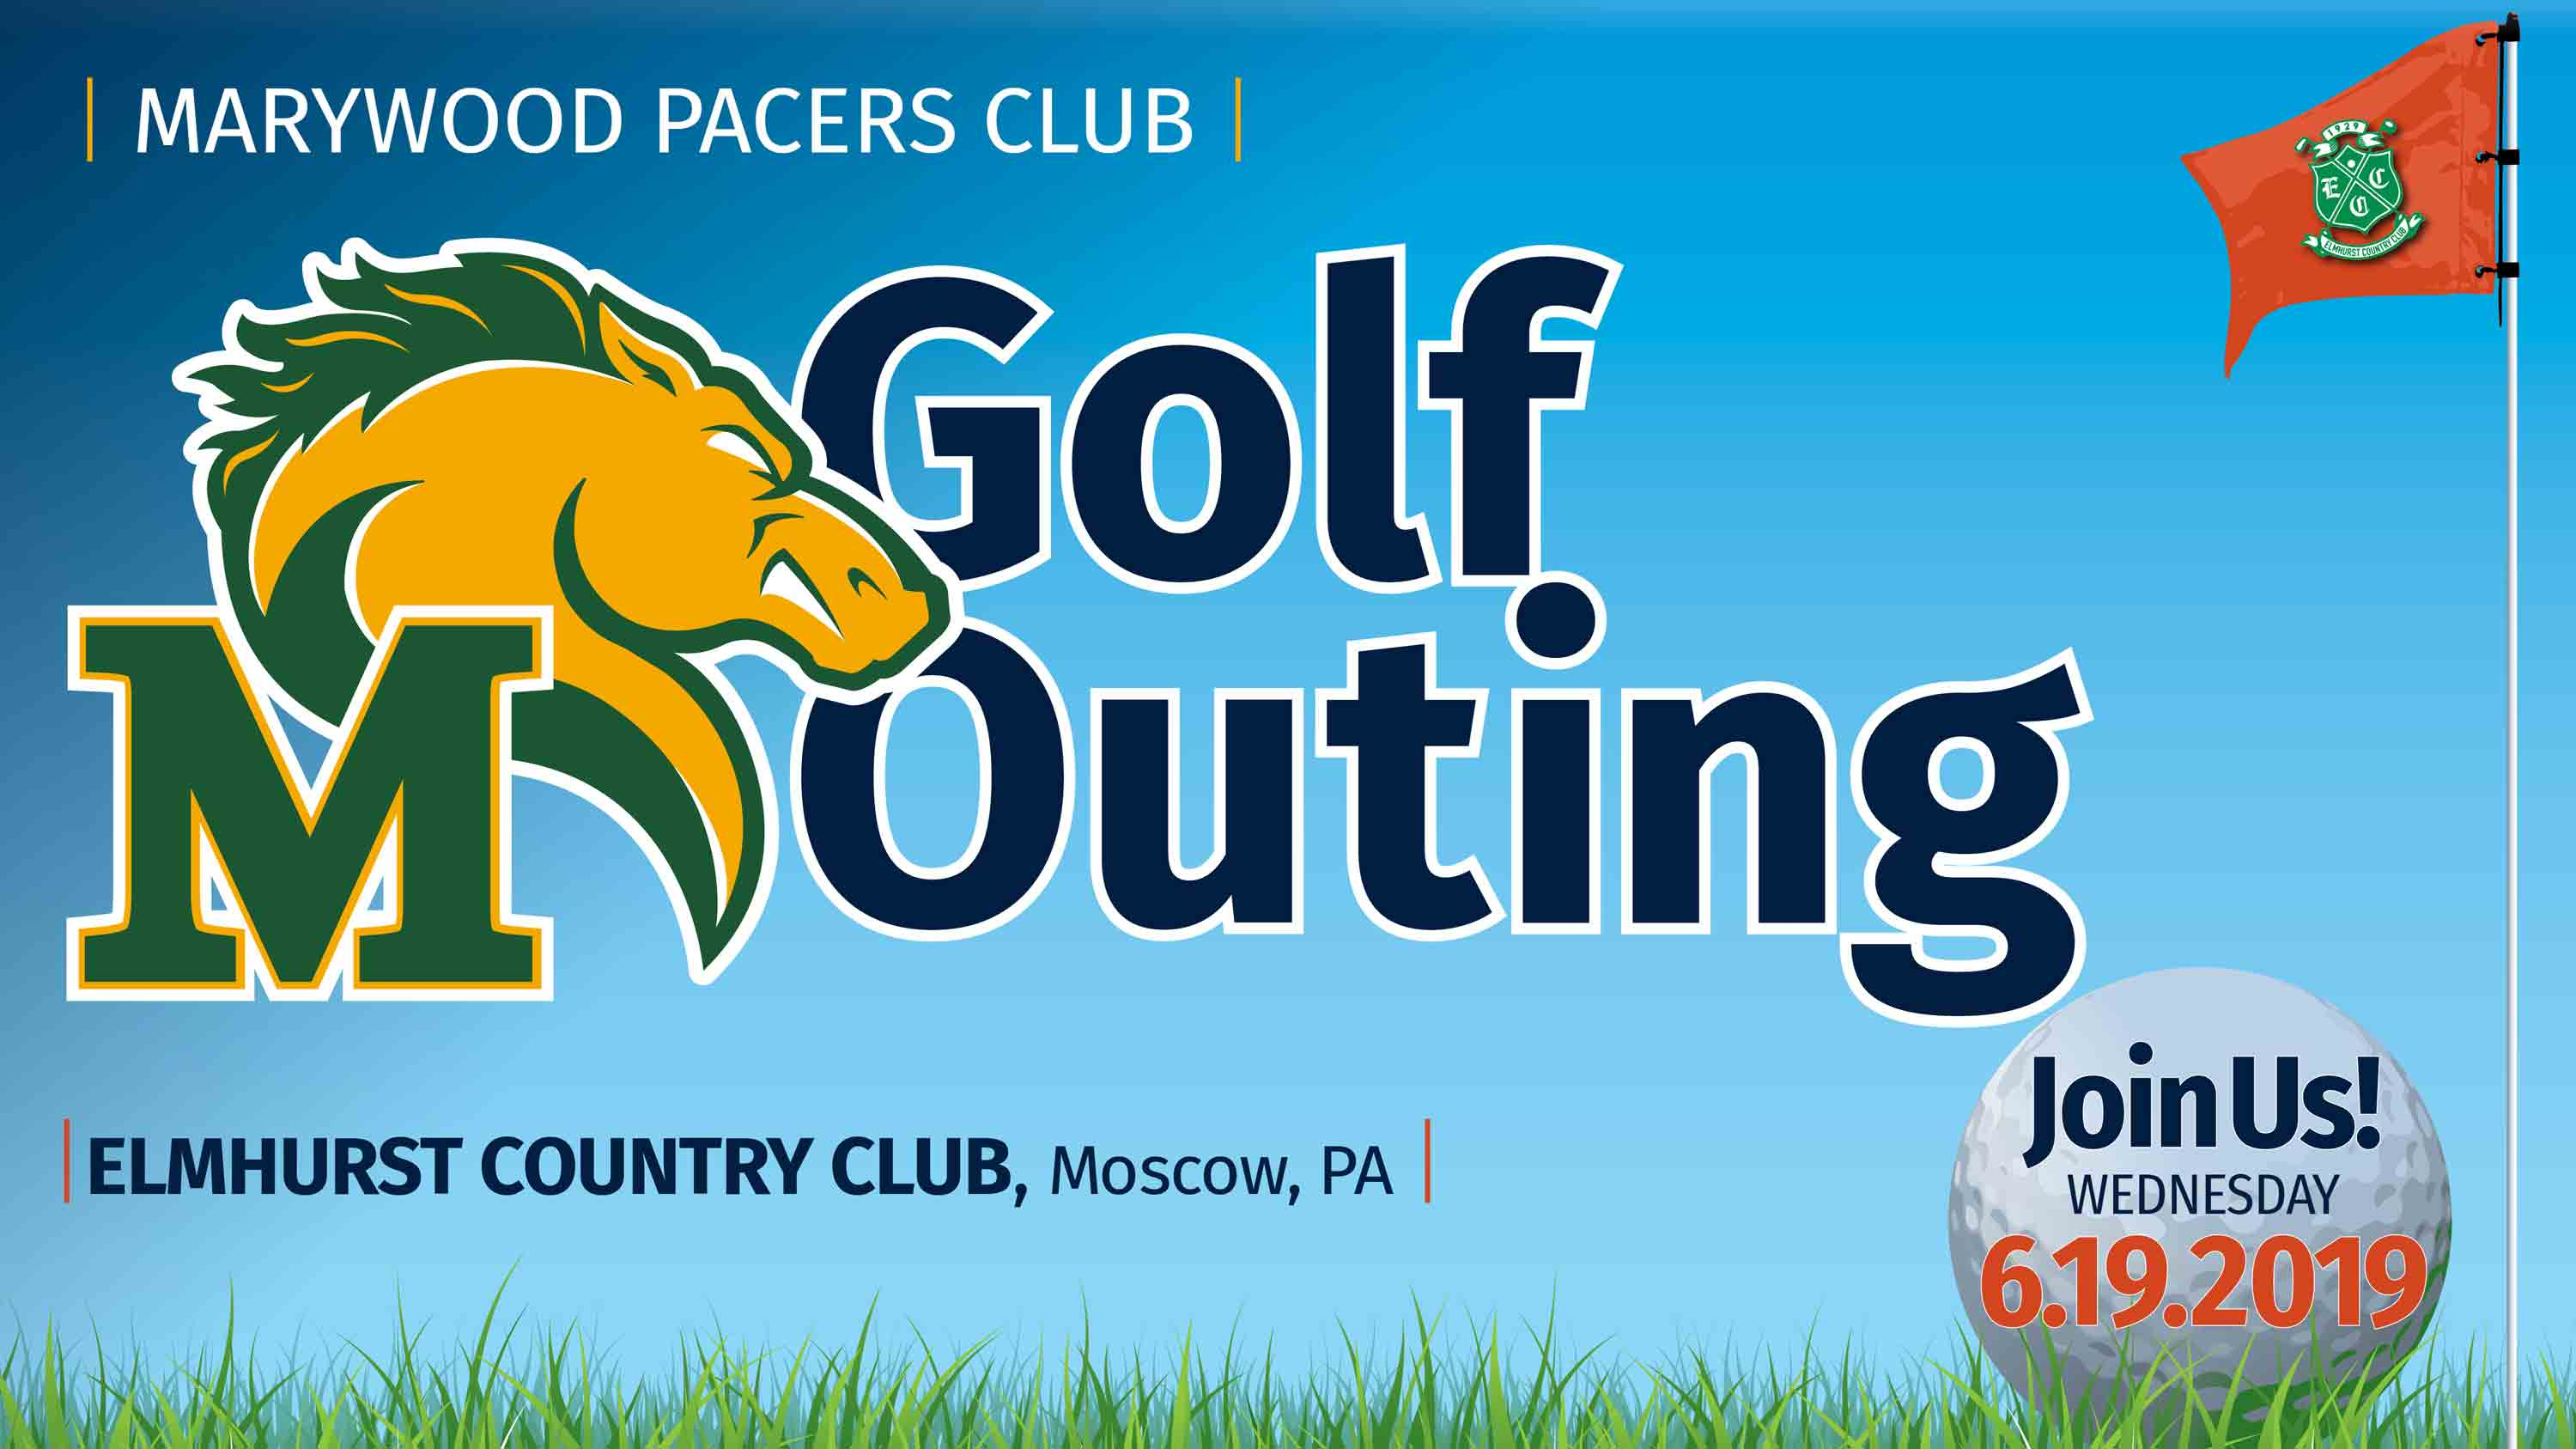 Marywood University - Pacers Club Golf Outing June 19, 2019